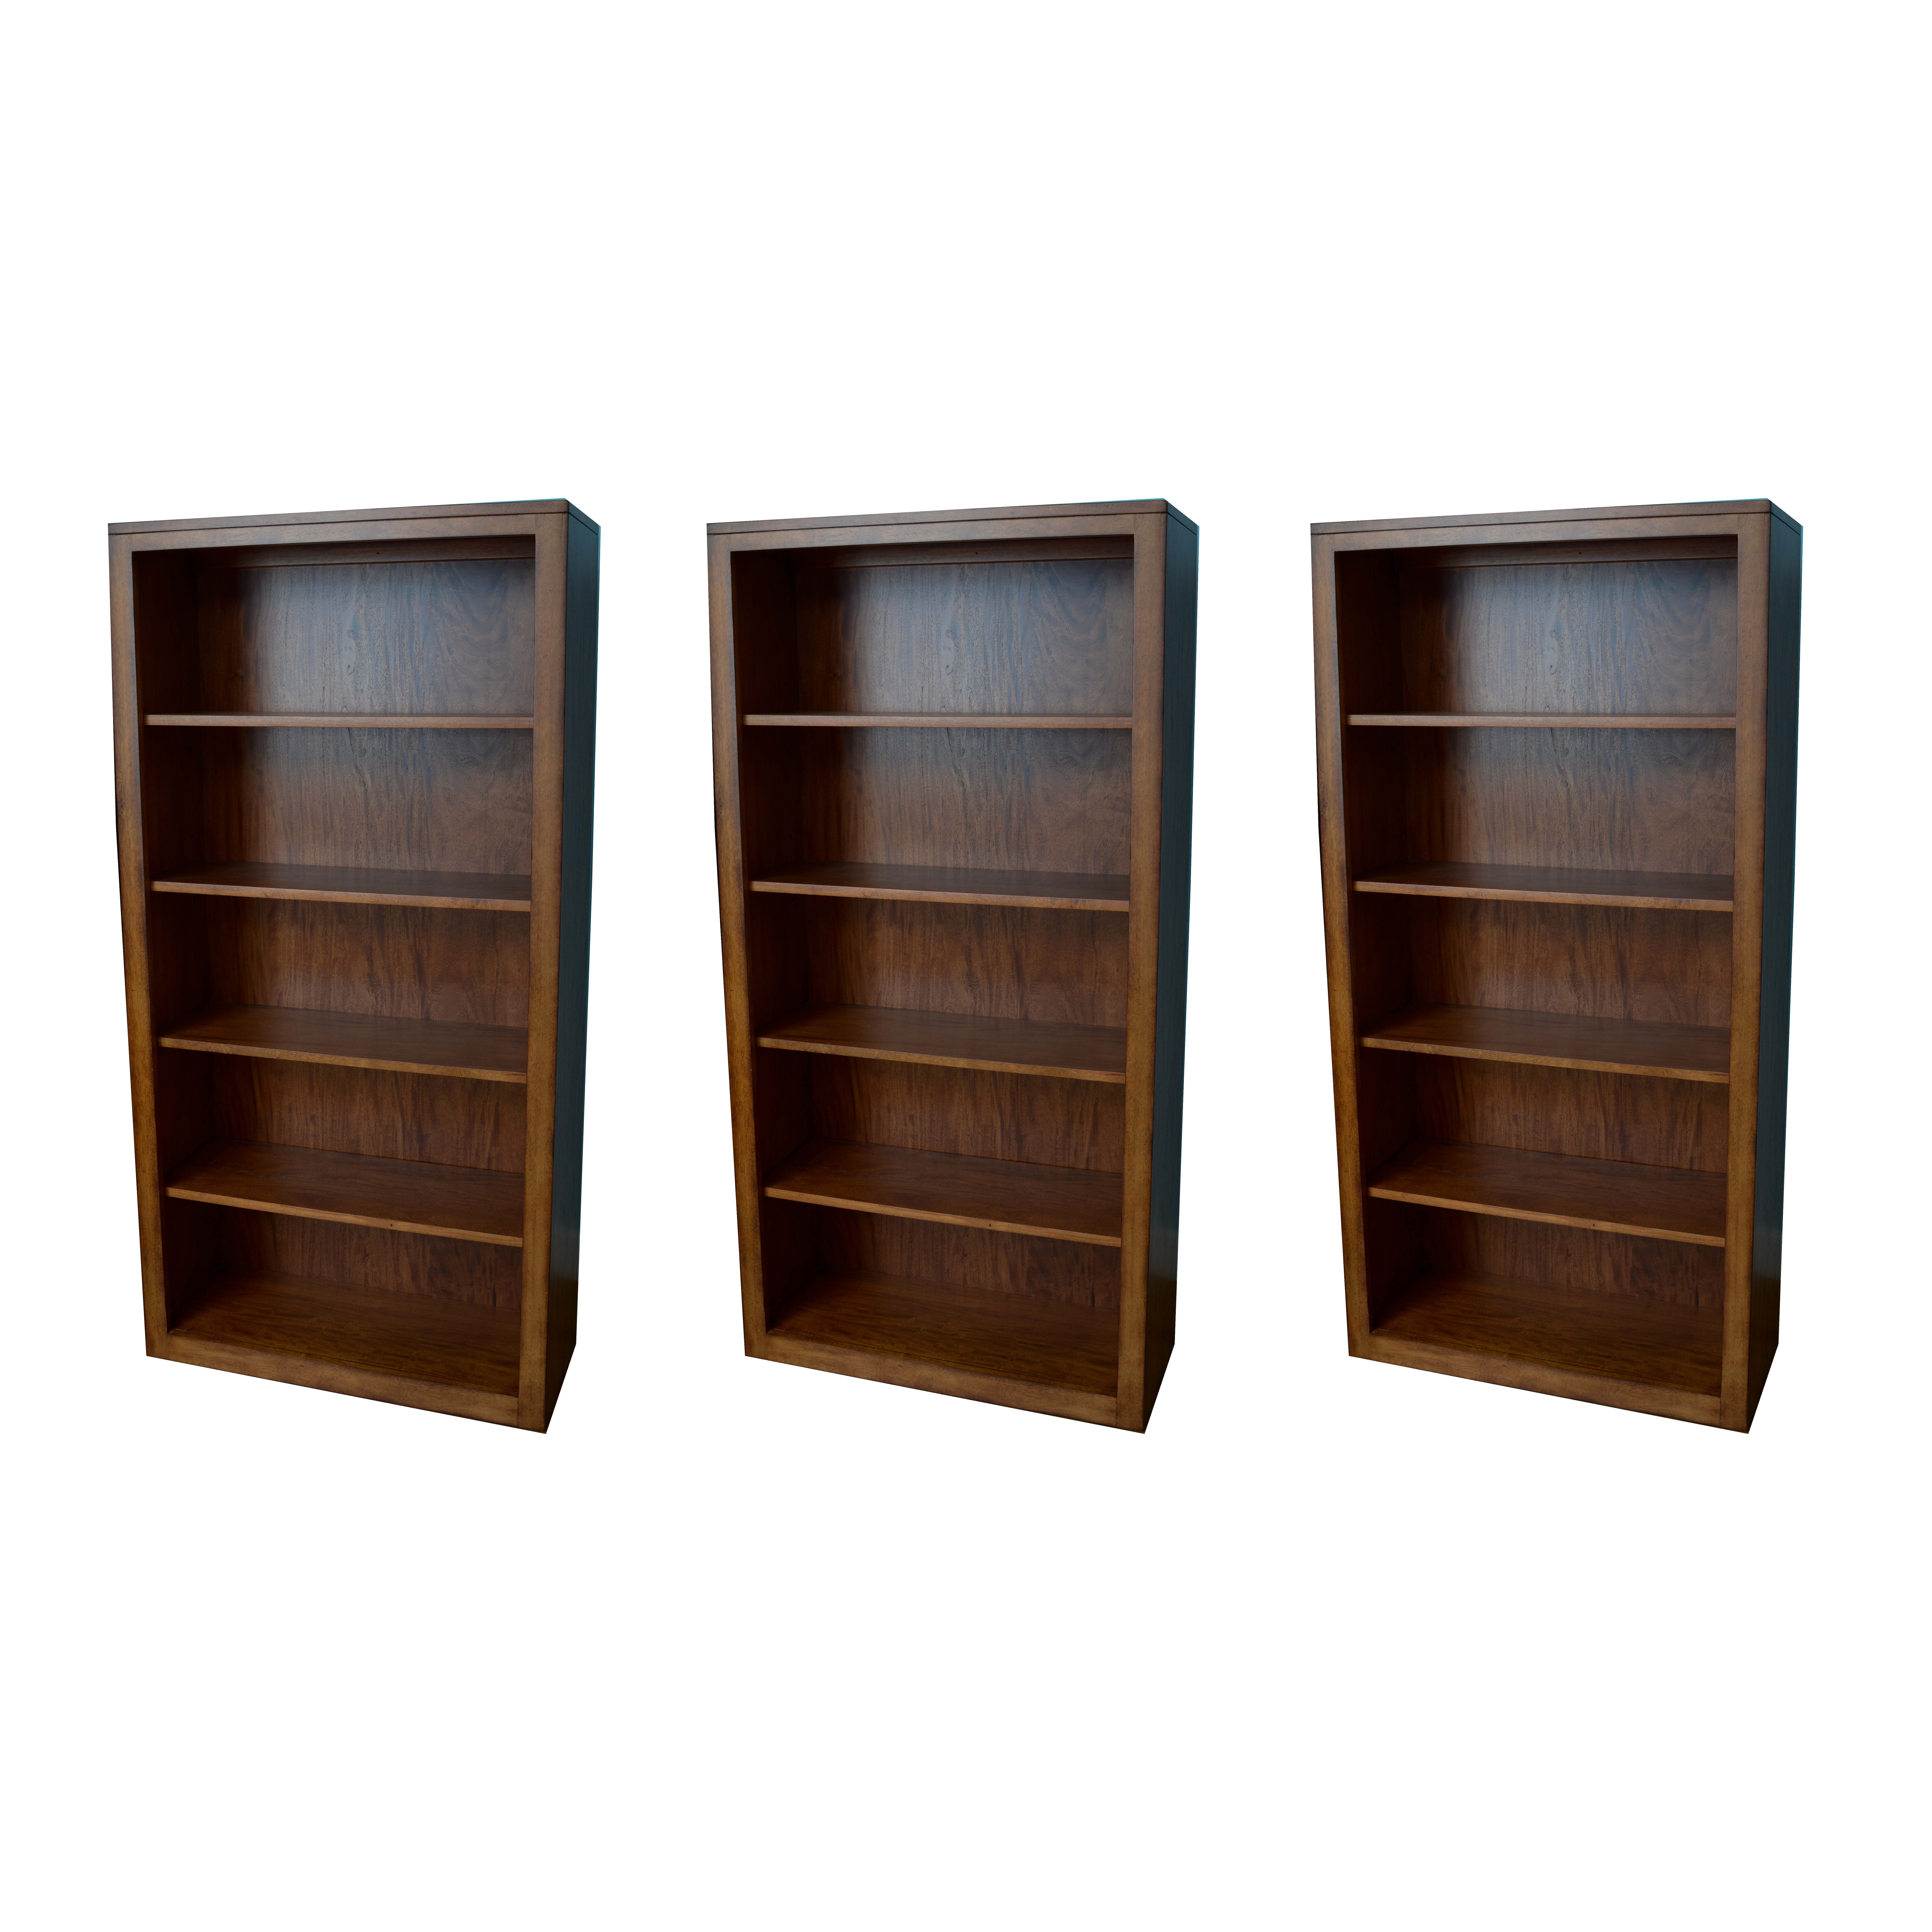 Set of Bookcases by Ethan Allen